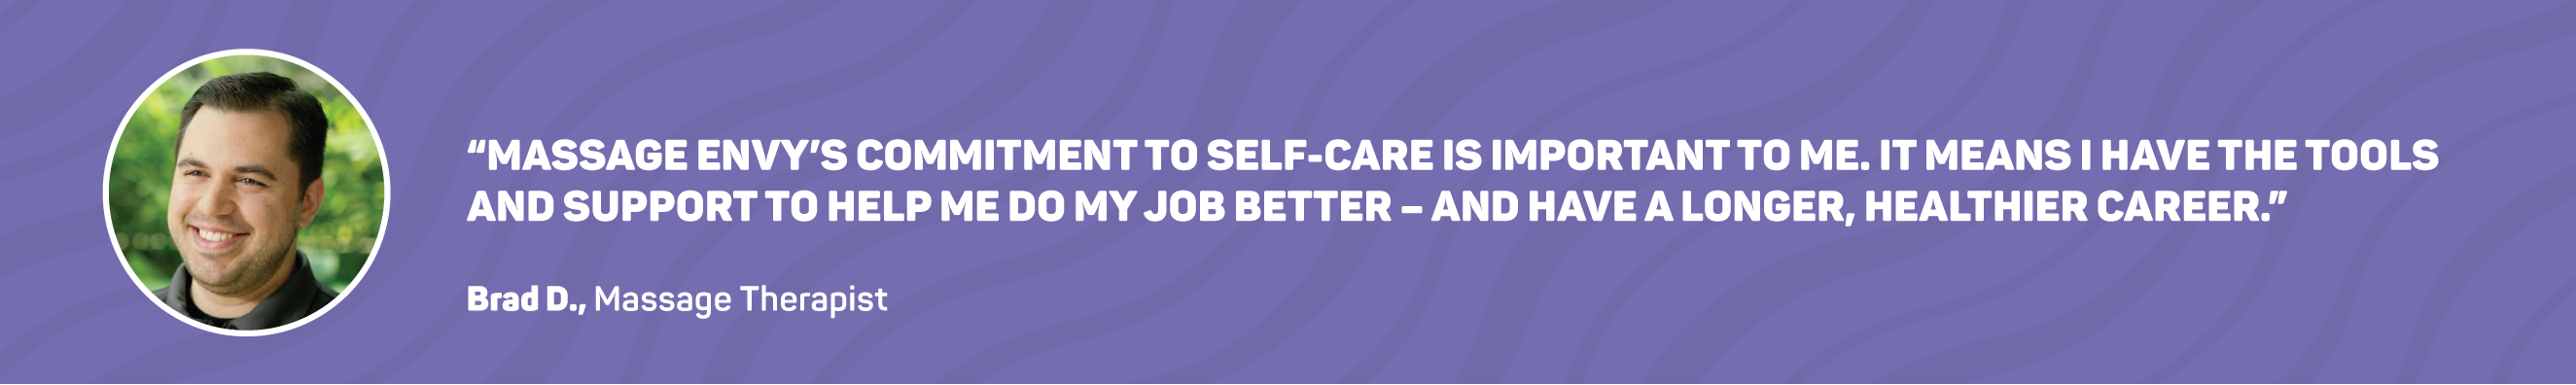 'Massage Envy's commitment to self-care is important to me. It means I have the tools and support to help me do my job better - and have a longer, healthier career.' - Brad C., Massage Therapist